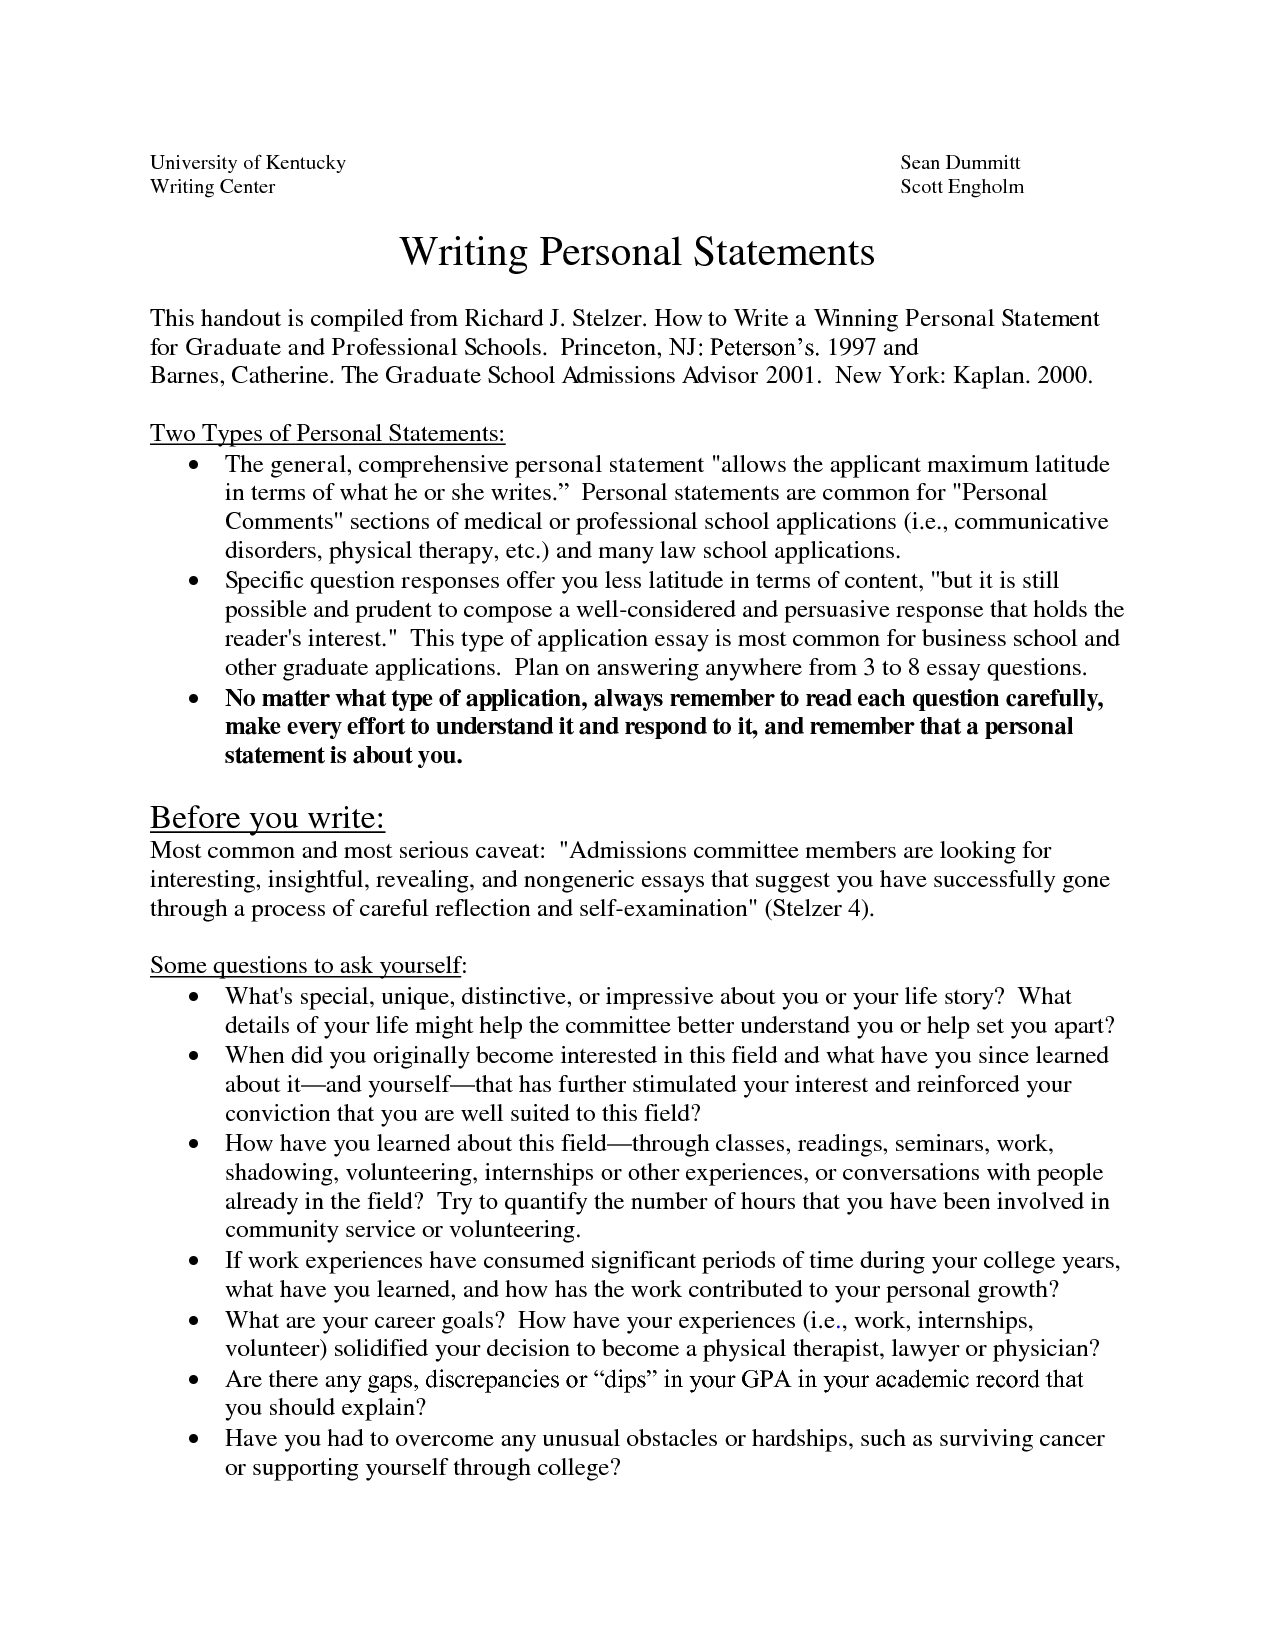 Graduate school essays samples